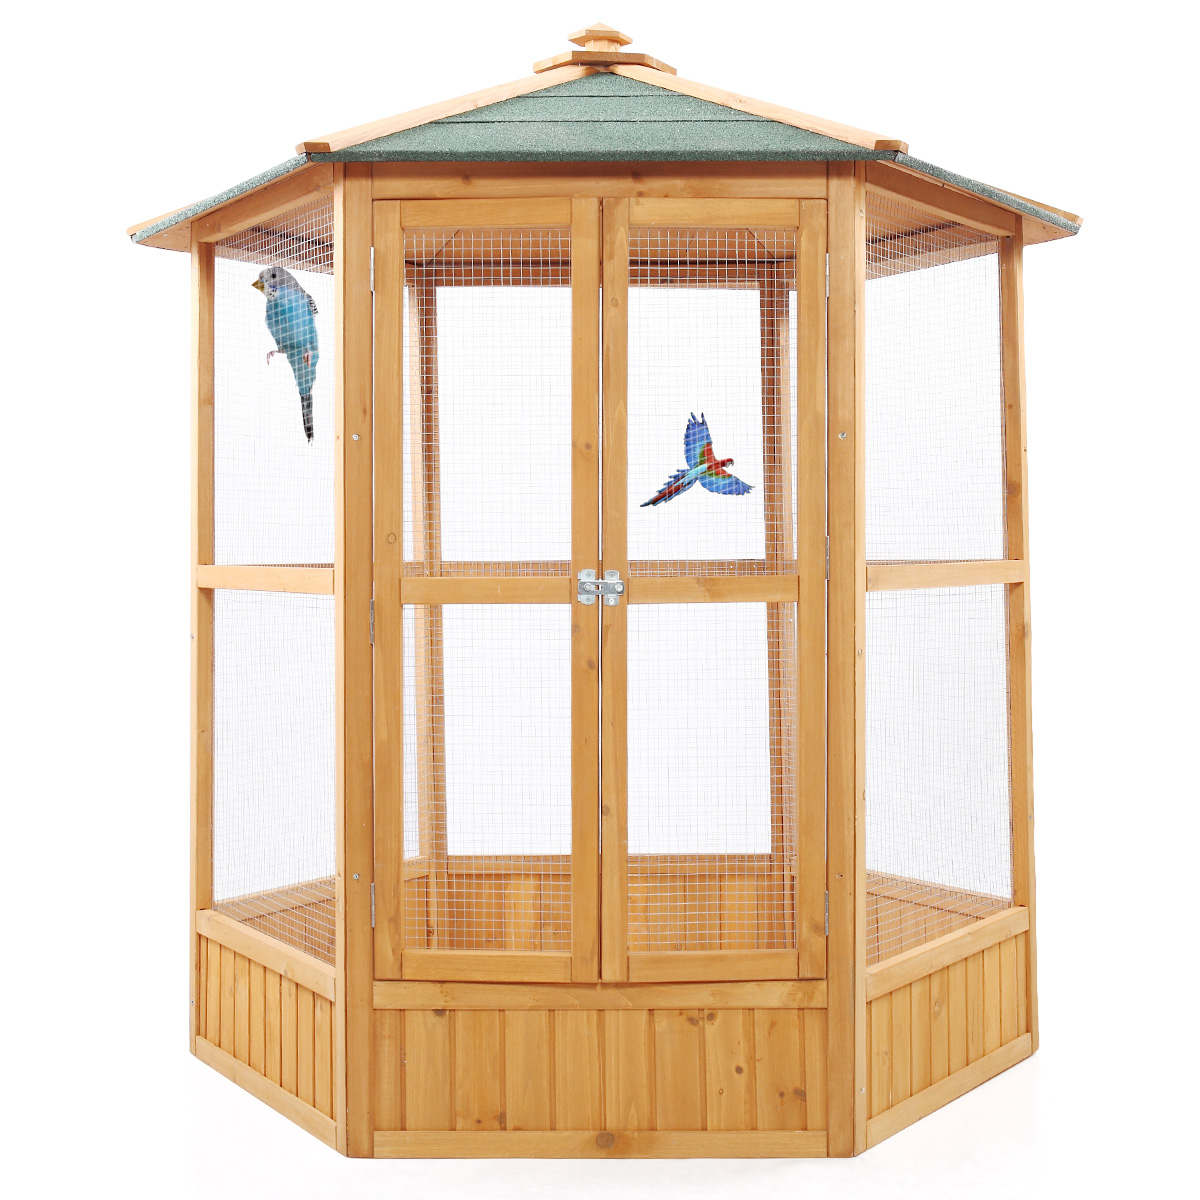 """64"""" Hexagonal Wooden Aviary Bird Cage Hatch Room Pet Parrot Cock Cockatoo Finch House by"""